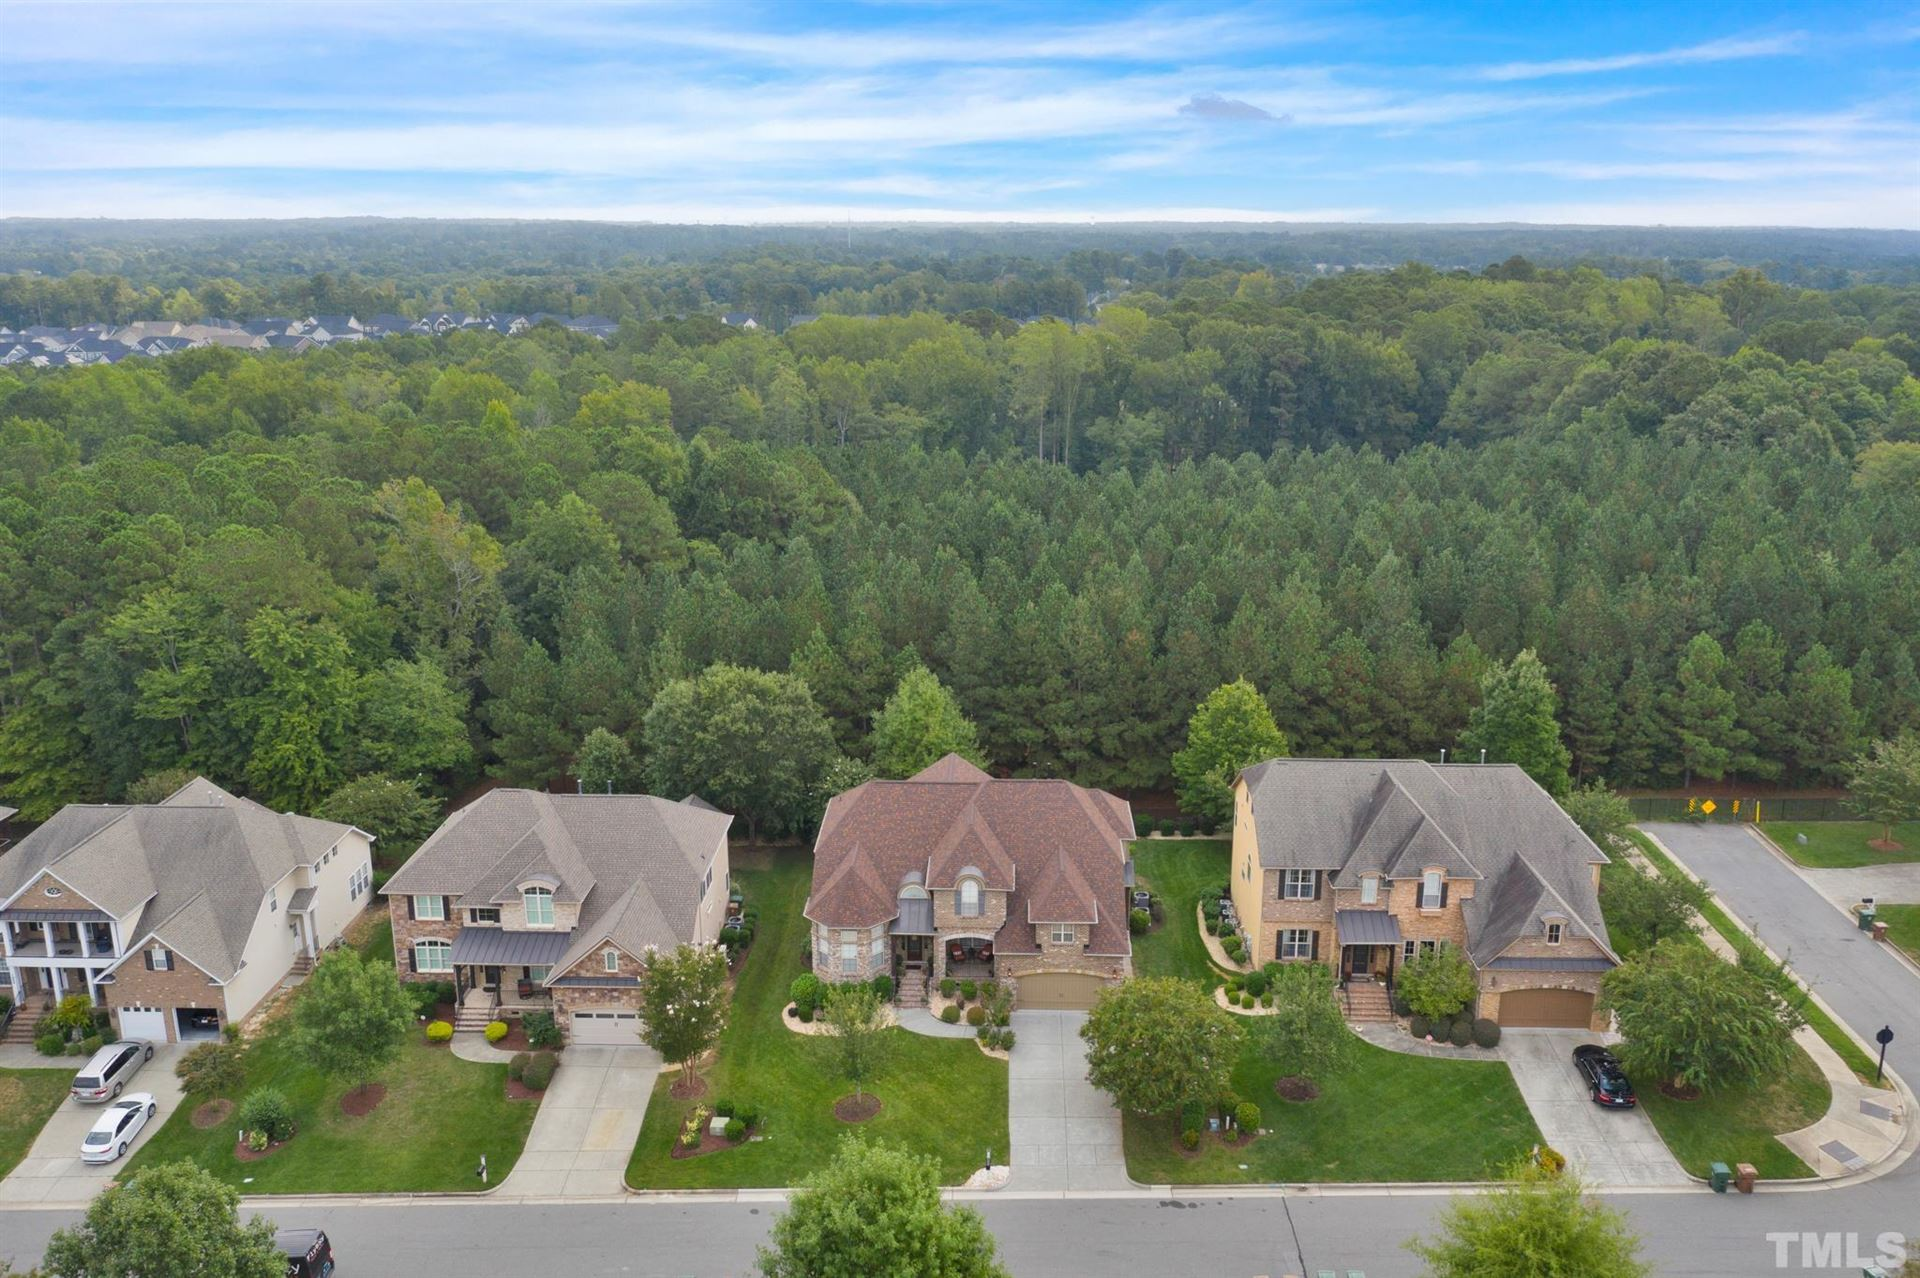 Photo of 1802 Old London Way, Cary, NC 27513-1706 (MLS # 2408715)